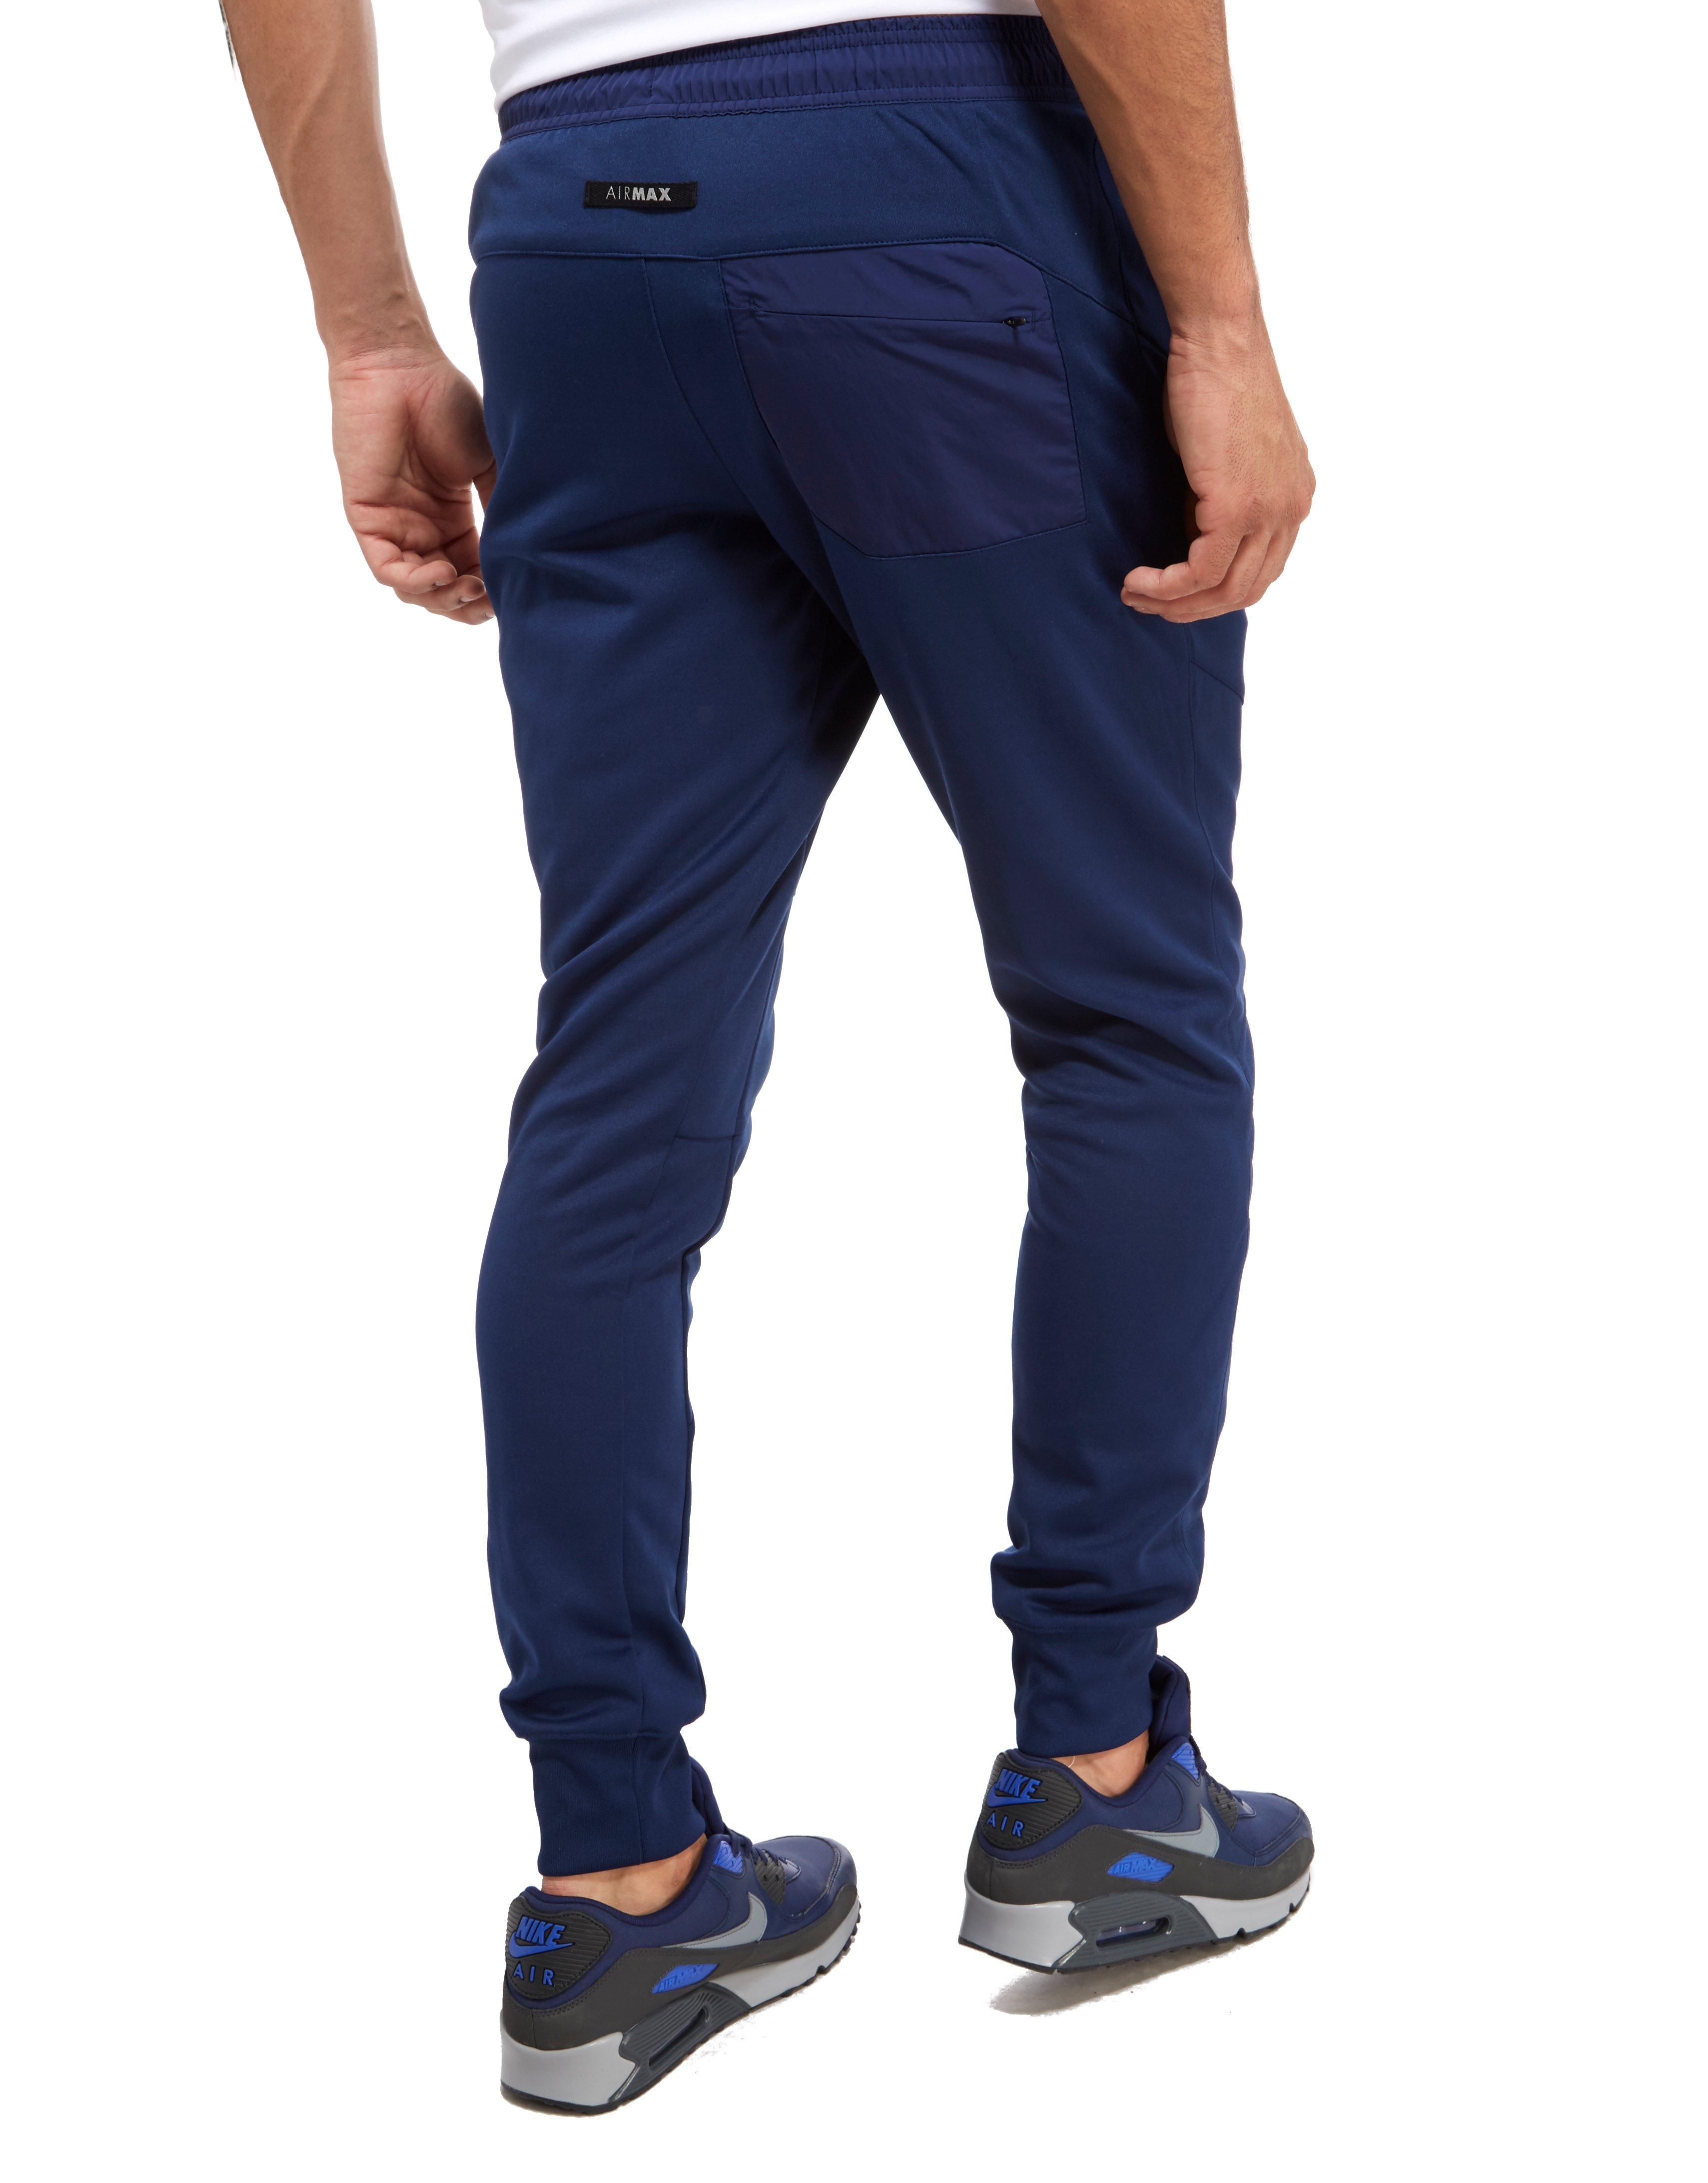 Men's Blue Air Max Poly Track Pants